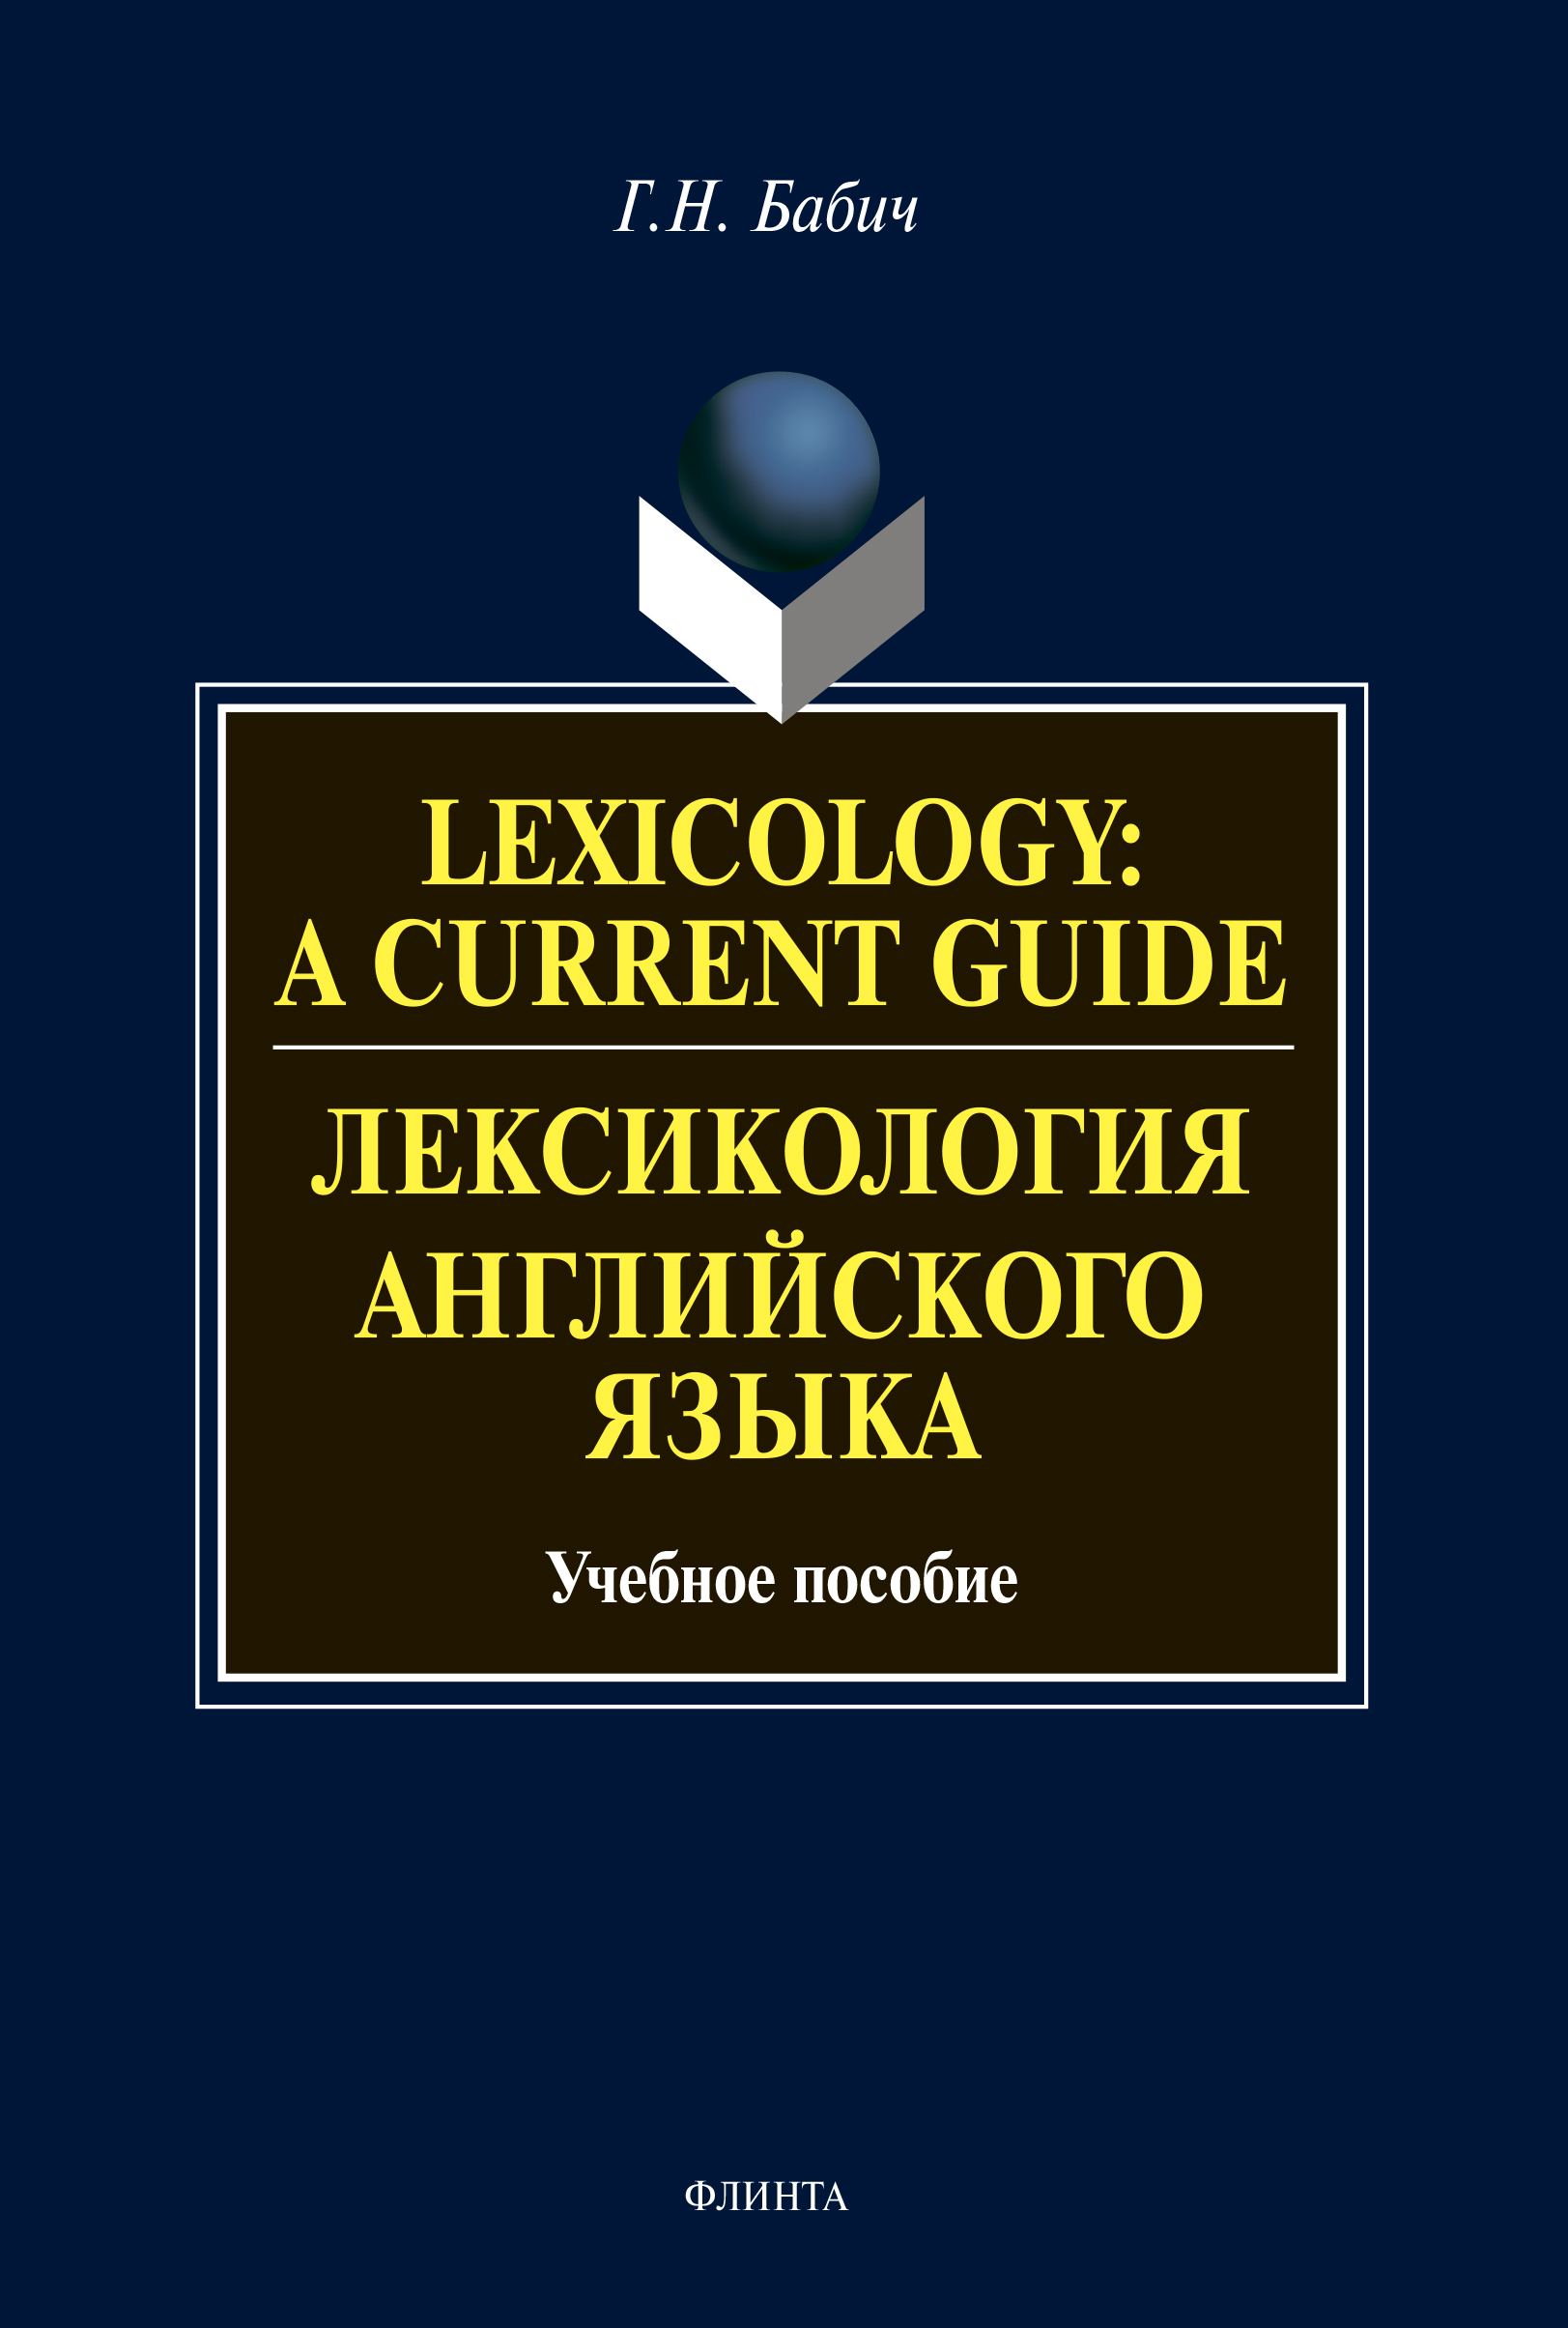 Г. Н. Бабич Lexicology: A Current Guide / Лексикология английского языка. Учебное пособие коллектив авторов лексикология современного английского языка